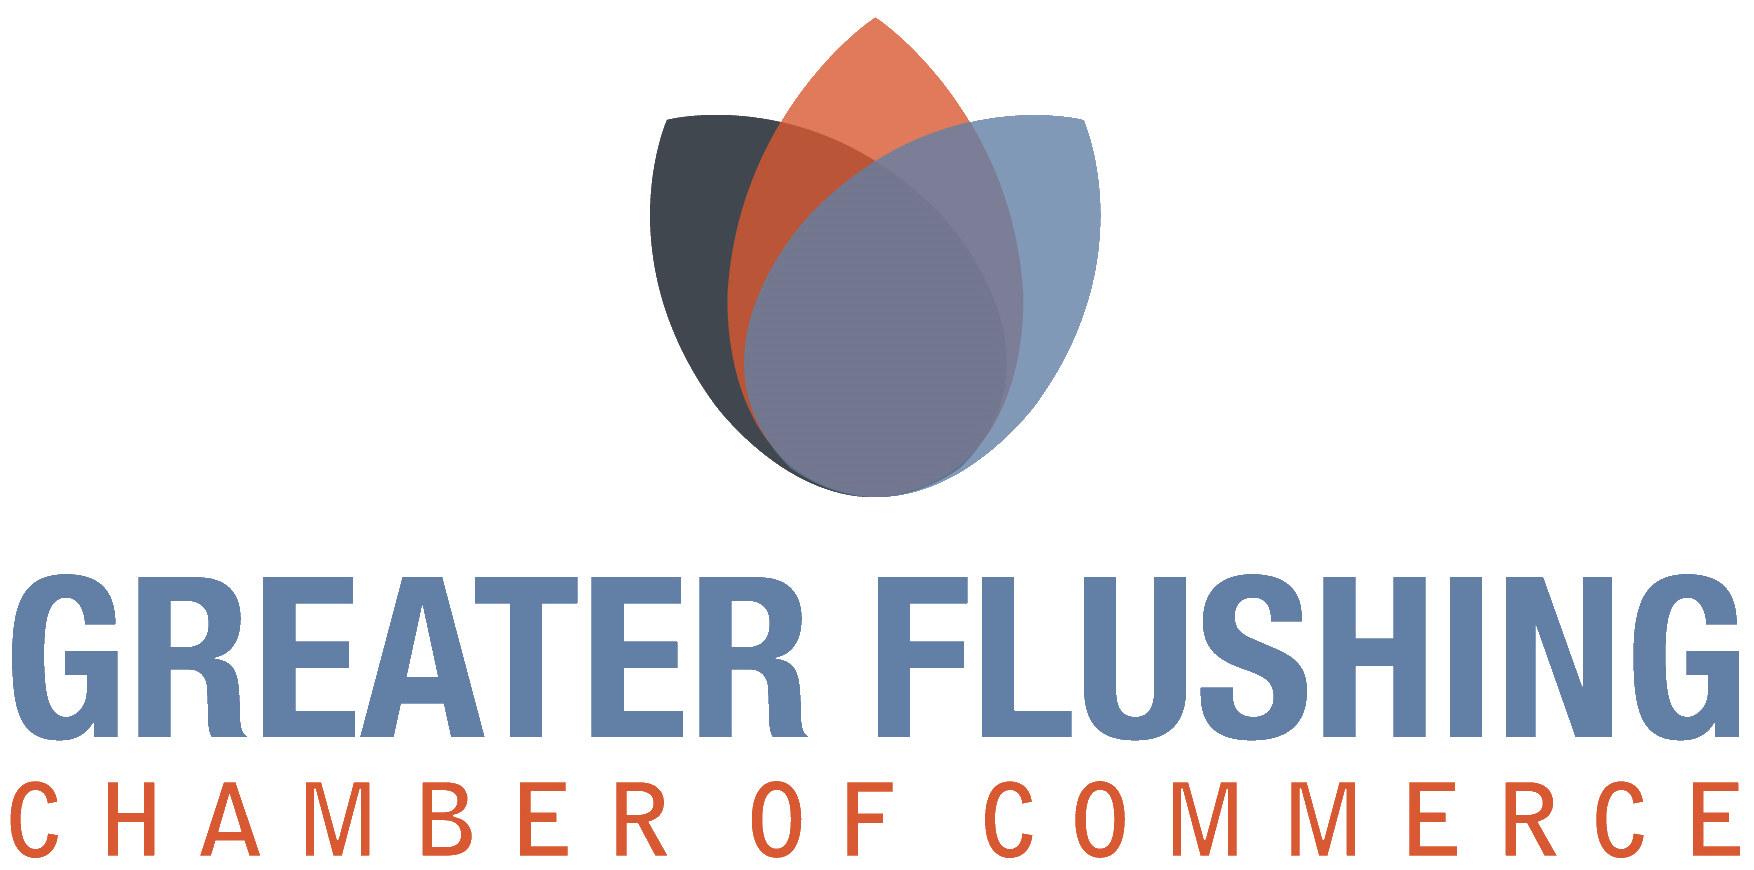 Greater Flushing Chamber of Commerce